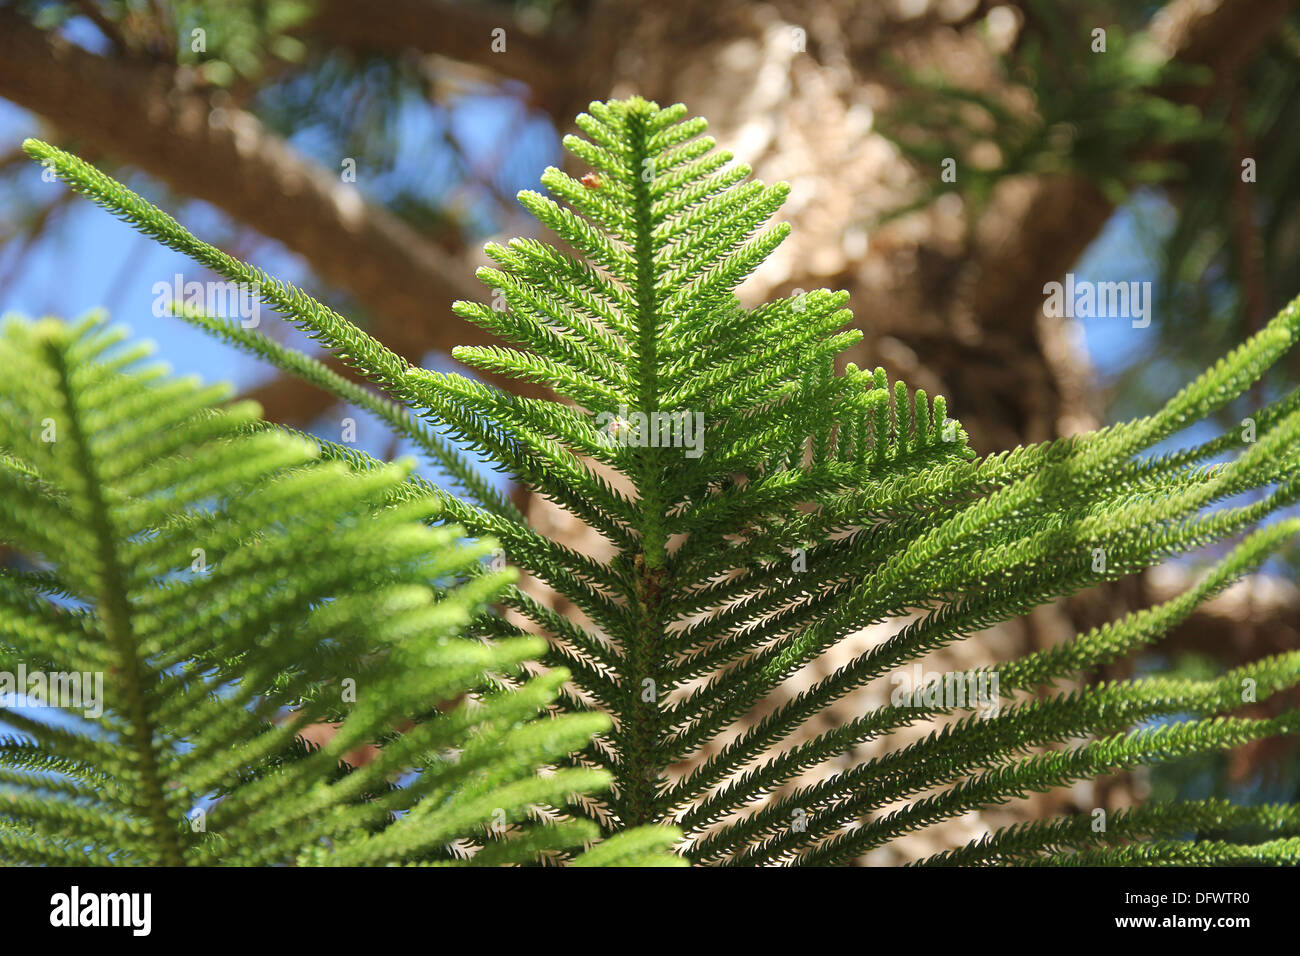 branches of green coniferous tree on a background of blue sky - Stock Image